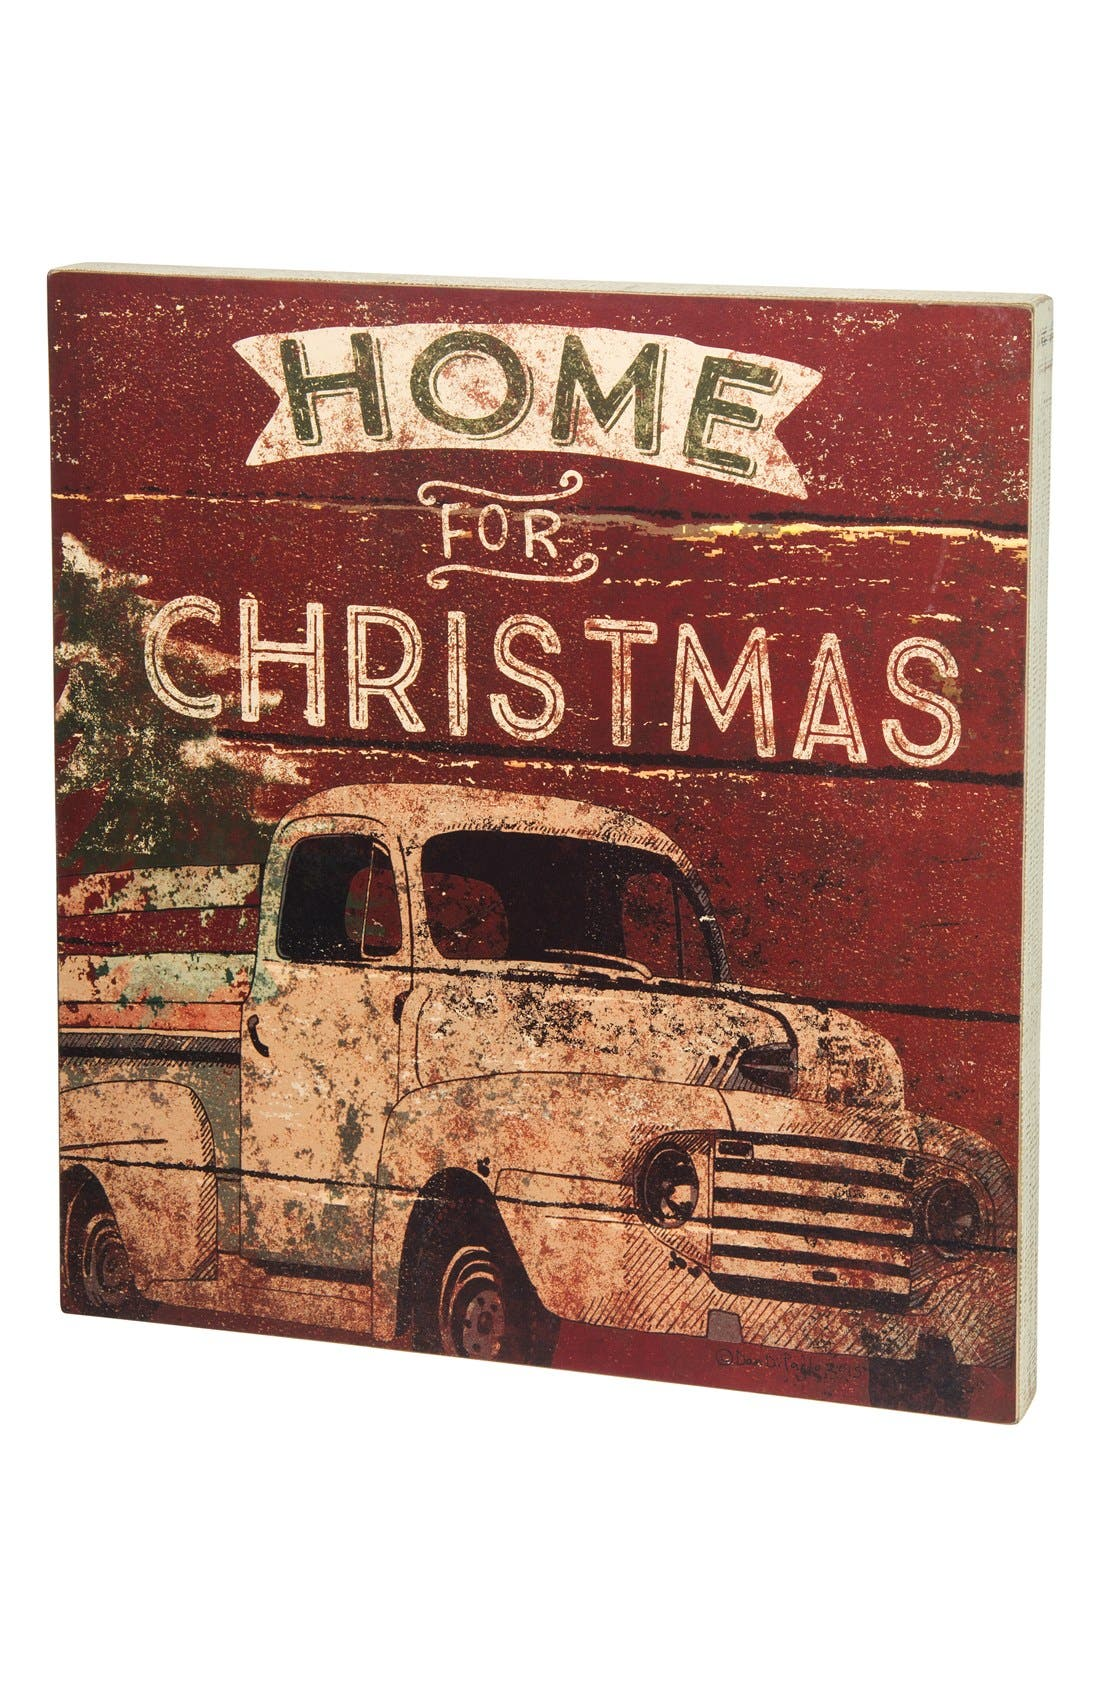 Primitives by Kathy 'Home for Christmas' Box Sign